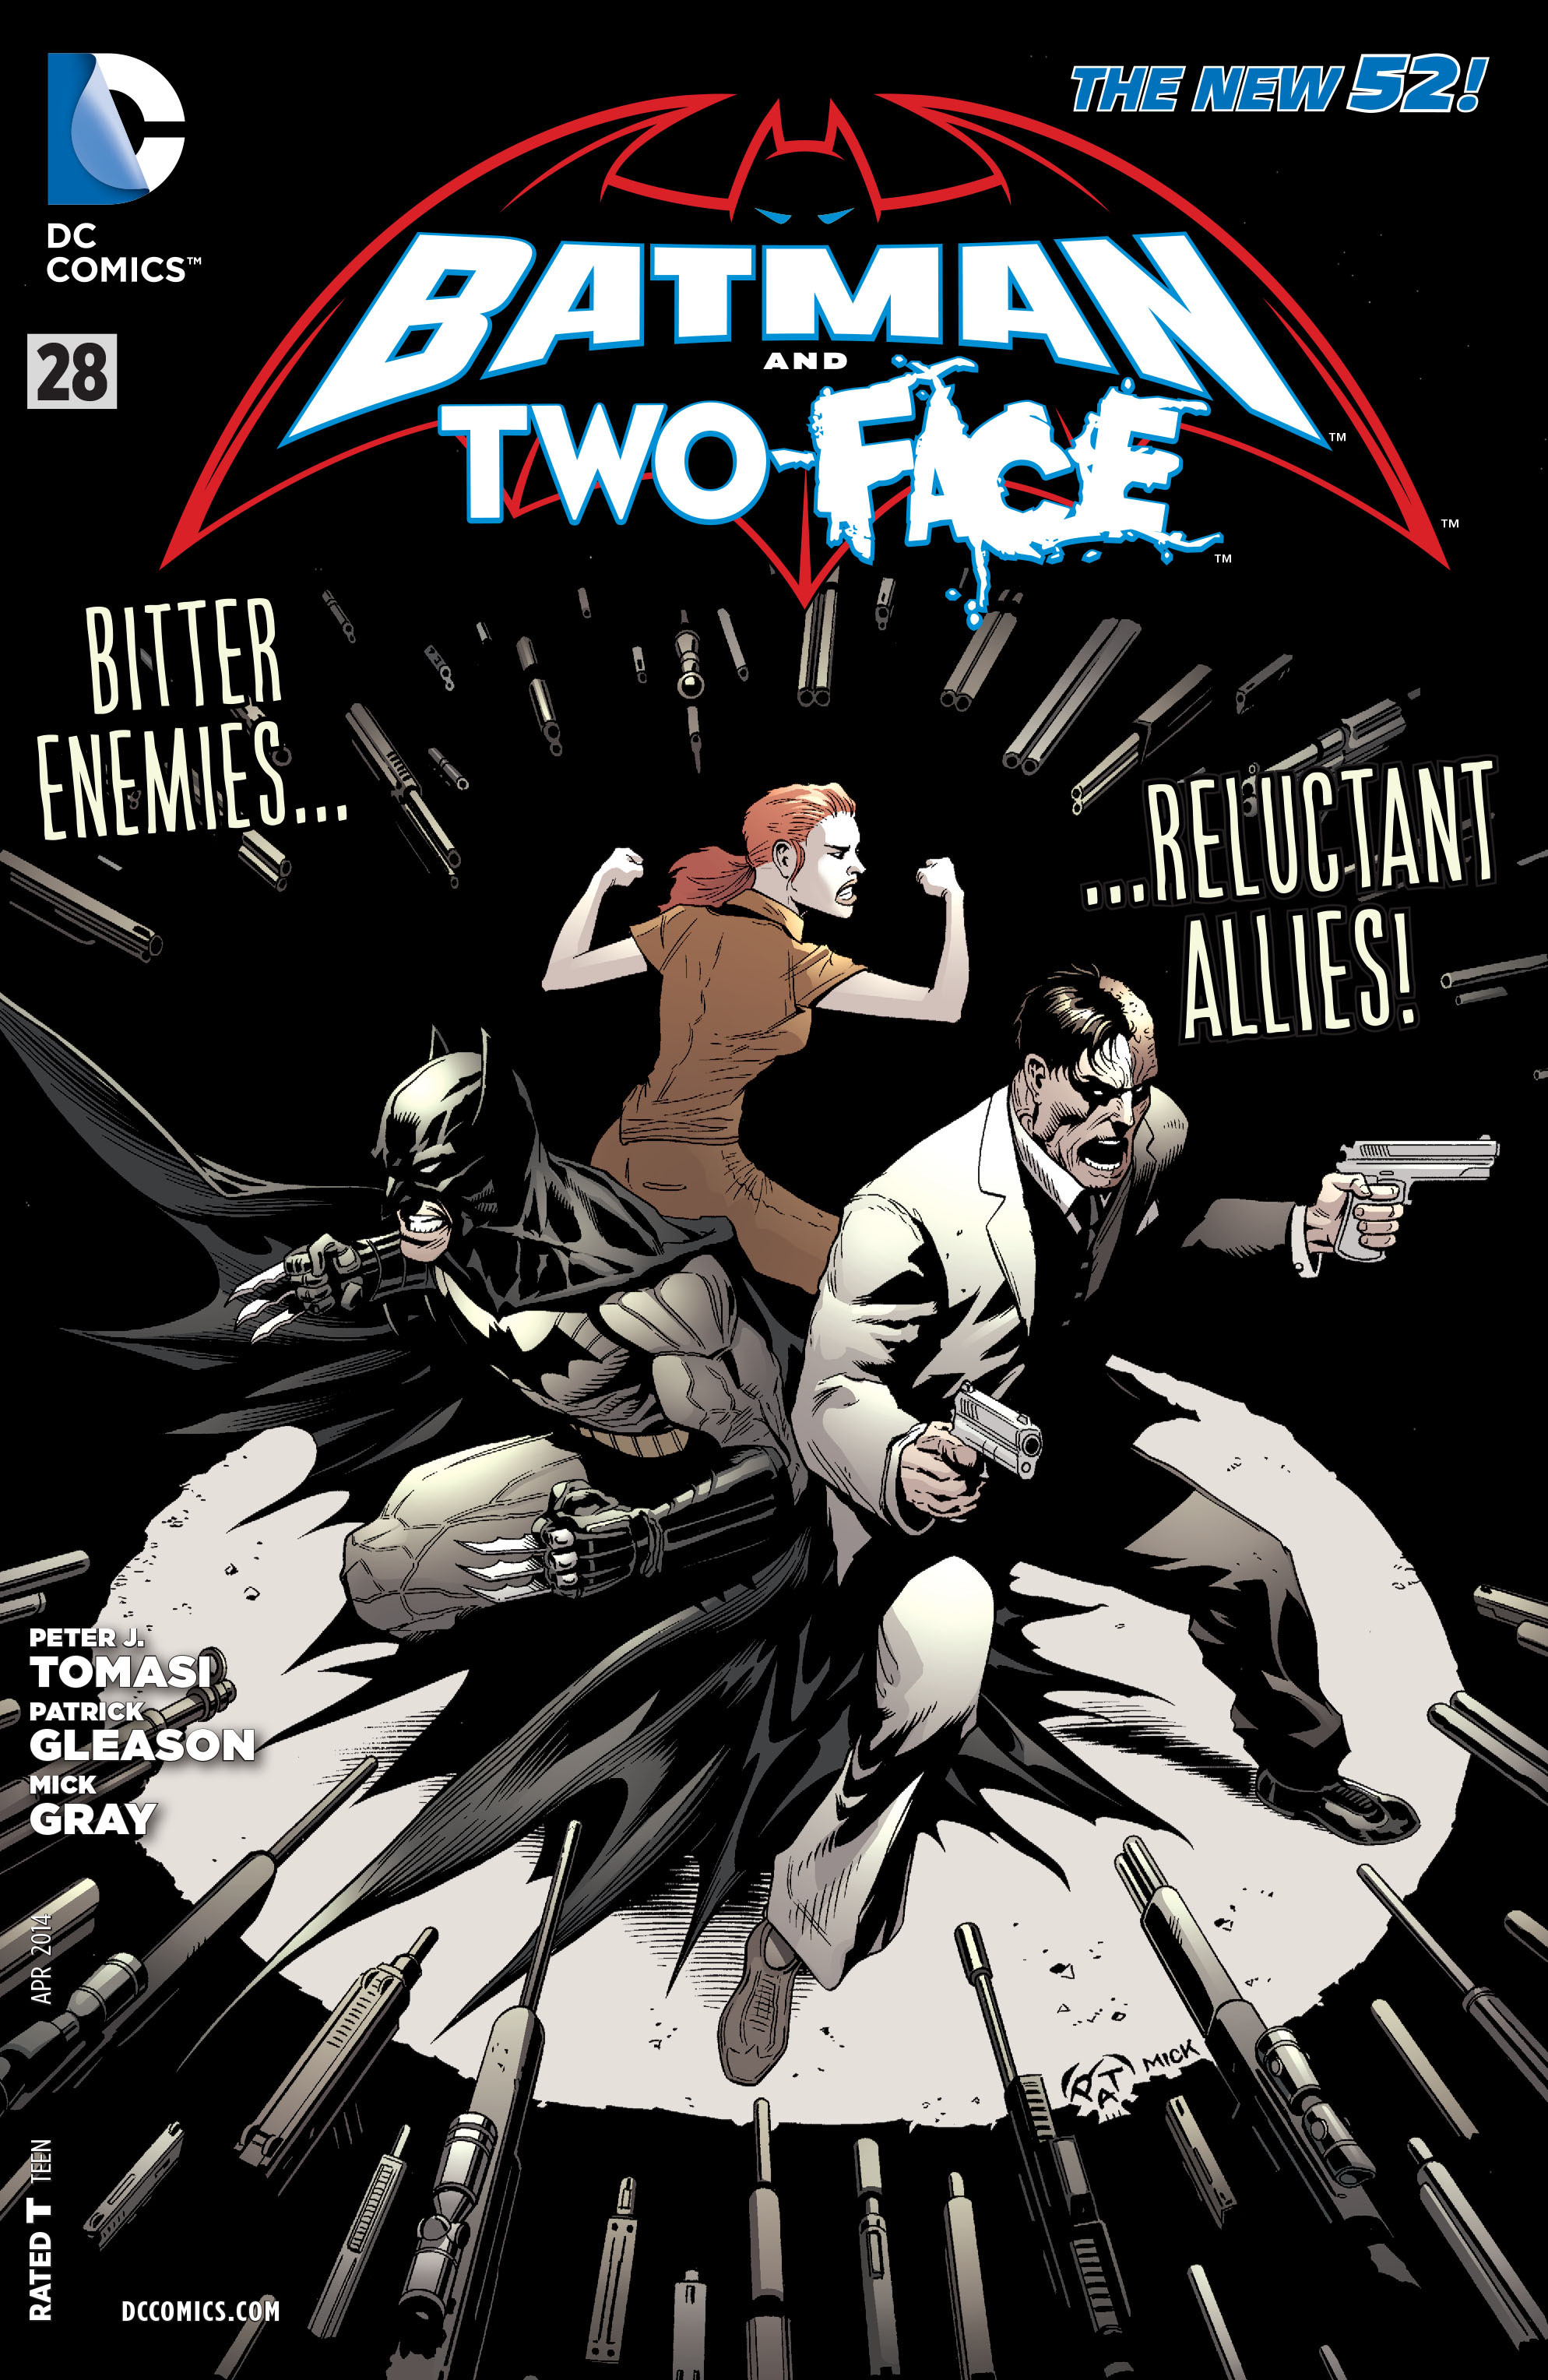 Read online Batman and Robin (2011) comic -  Issue #28 - Batman and Two-Face - 1